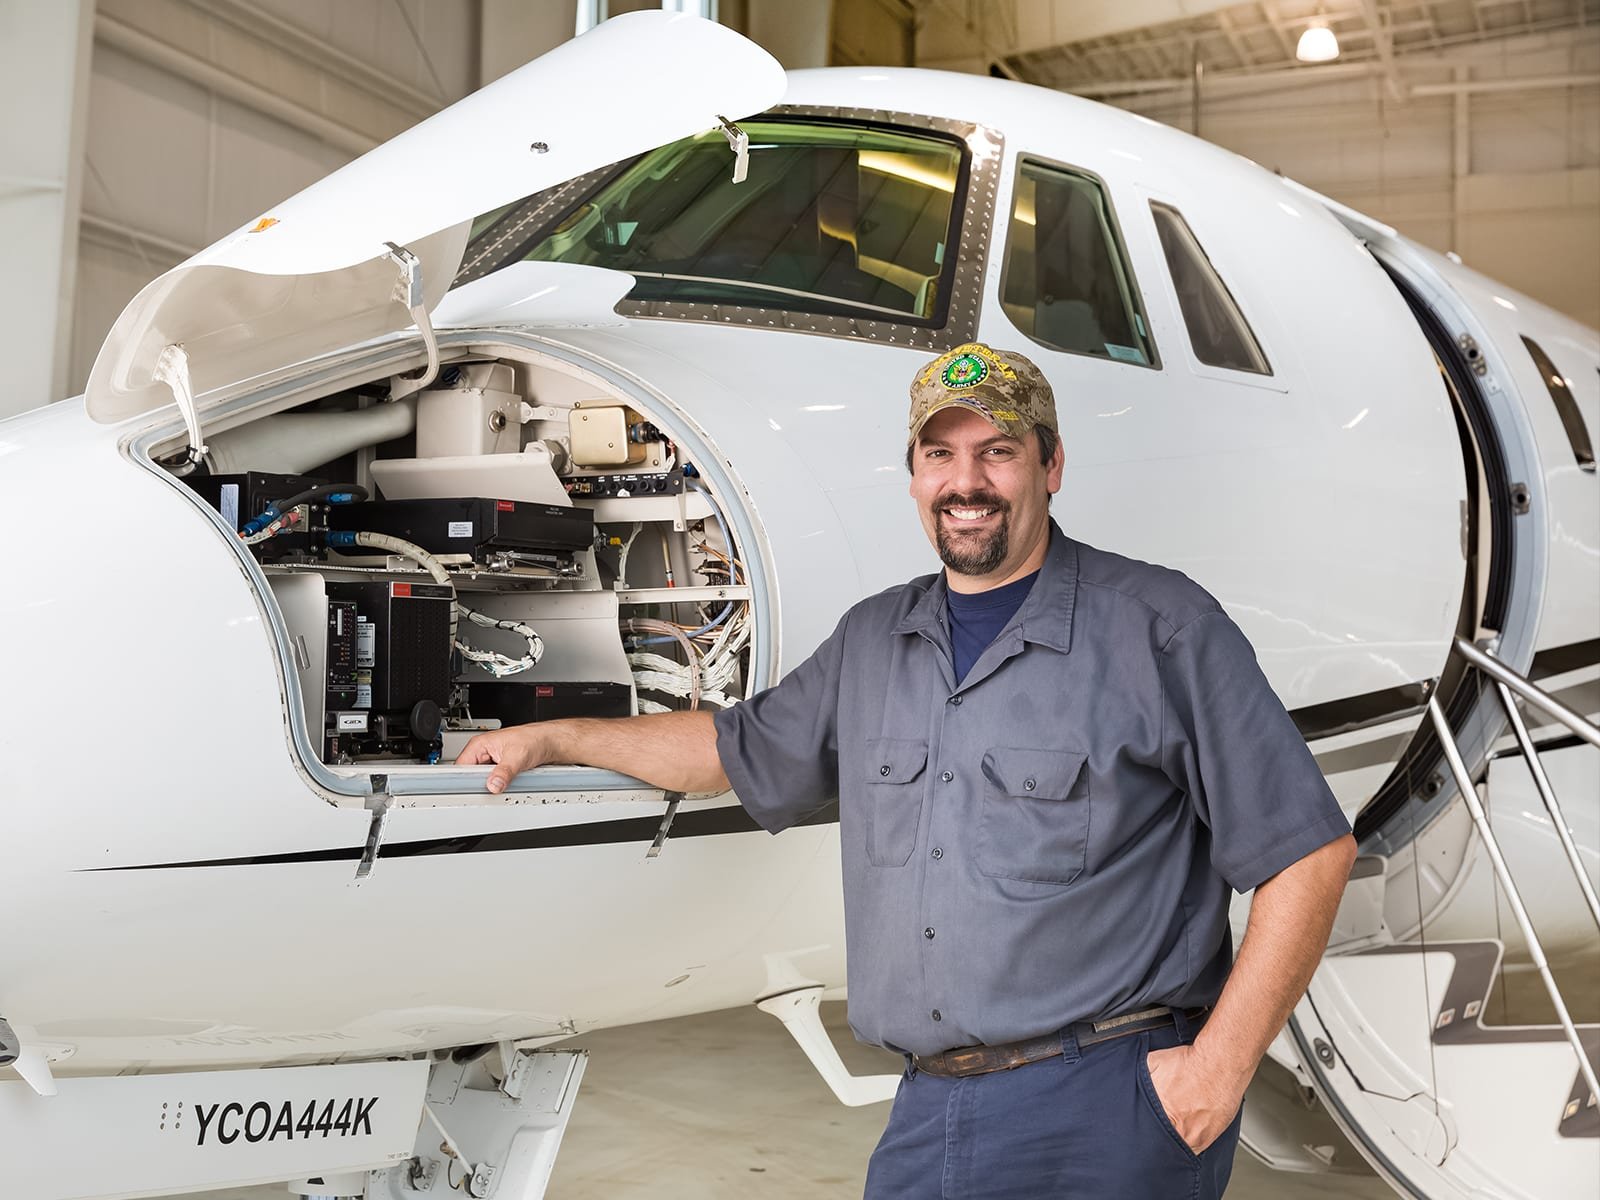 A smiling Priority Jet maintenance technician